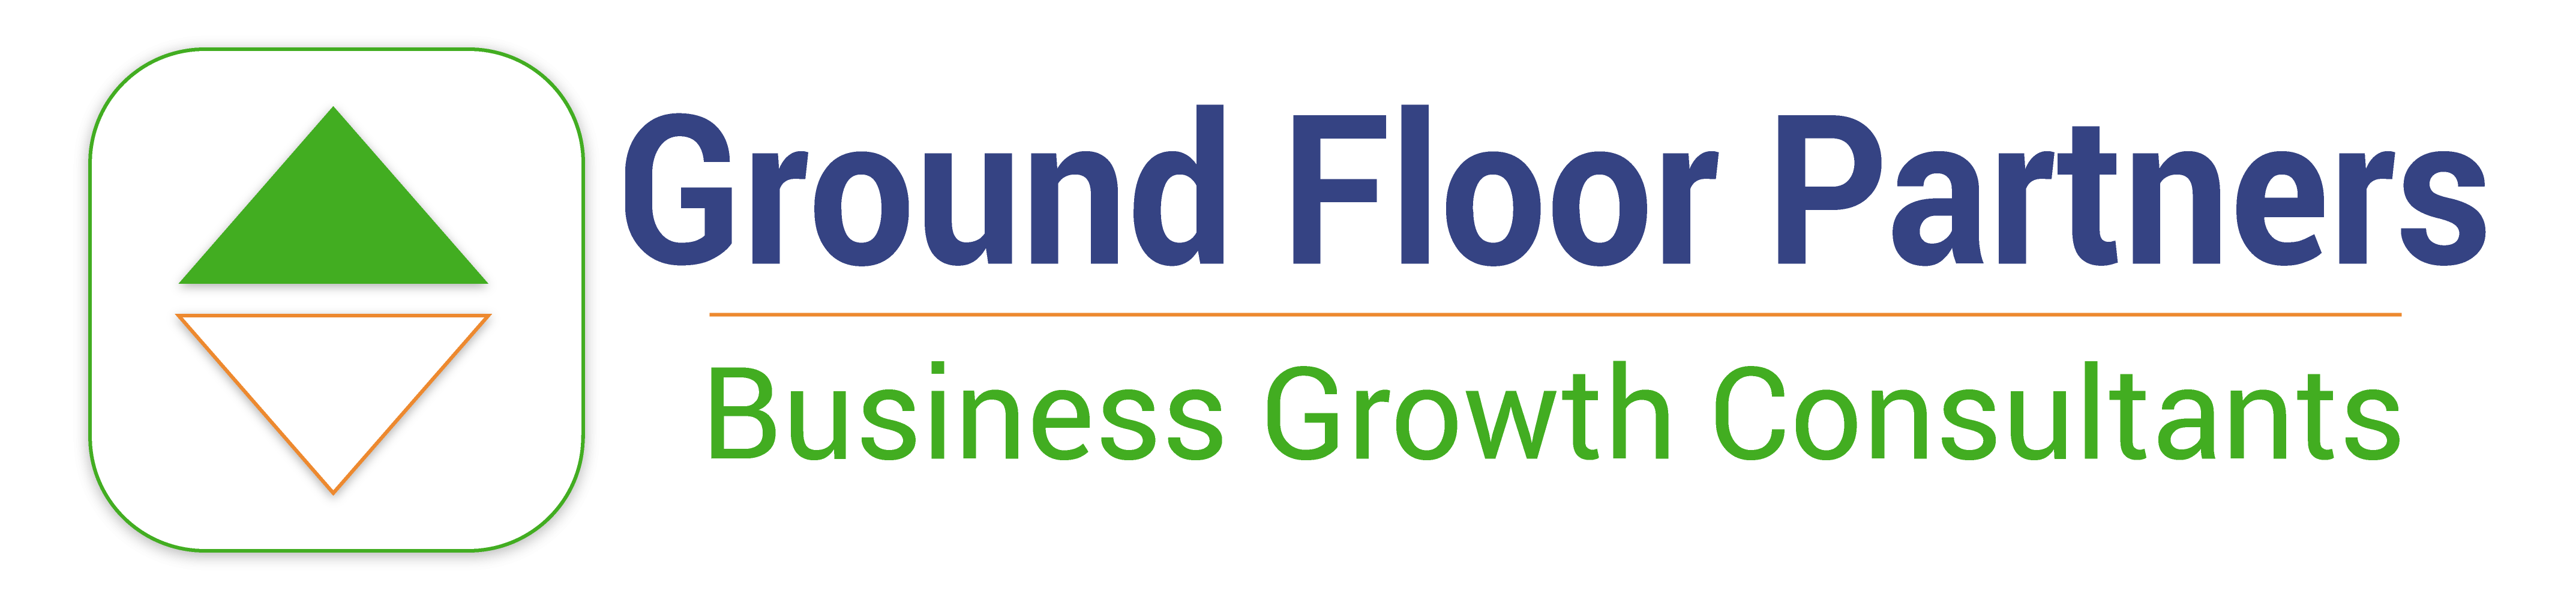 Ground Floor Partners: Business Growth Consultants